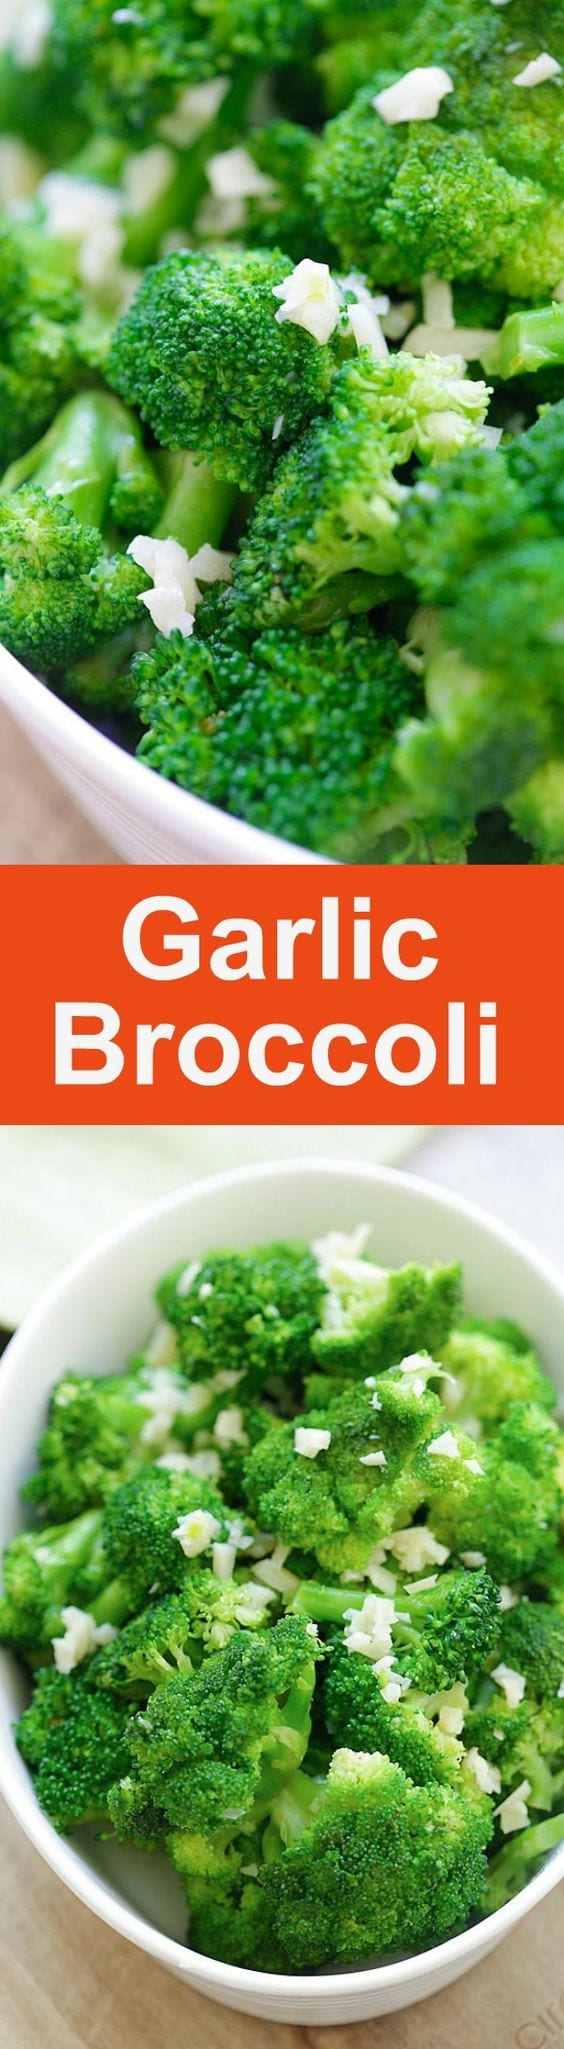 Garlic Broccoli – healthy sauteed broccoli with garlic, butter and lemon. This garlic broccoli recipe is so easy and takes 10 mins | rasamalaysia.com